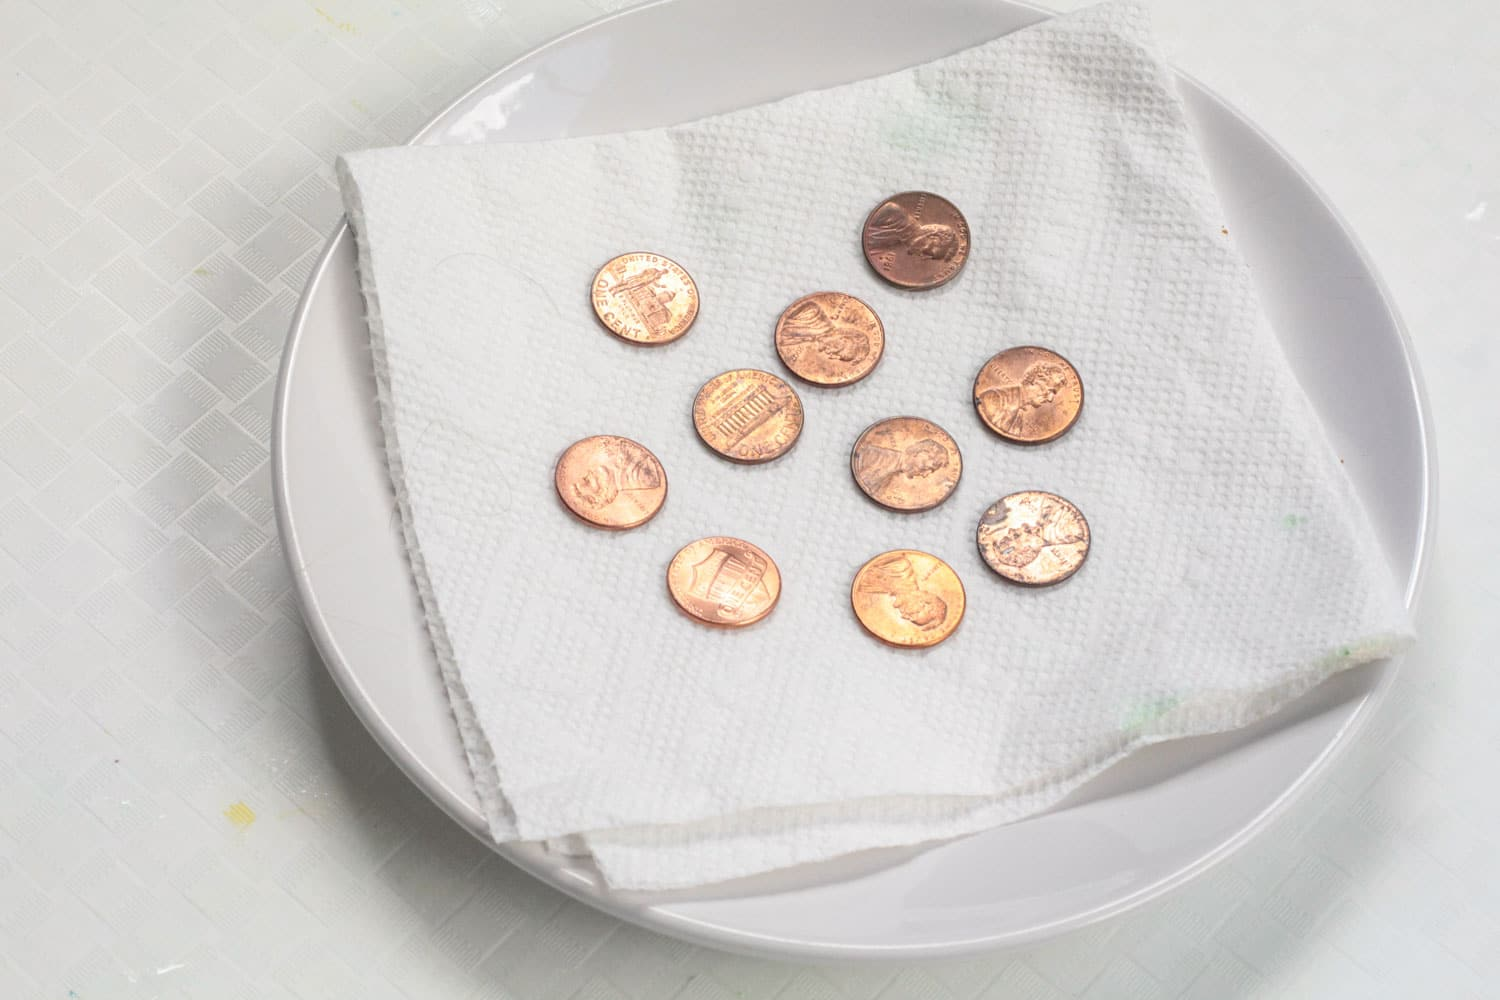 Want an easy and educational activity? Turning a penny green is a fun science experiment that kids of all ages enjoy! Turning pennies green is a classic science activity where kids learn how to oxidize a penny quickly.